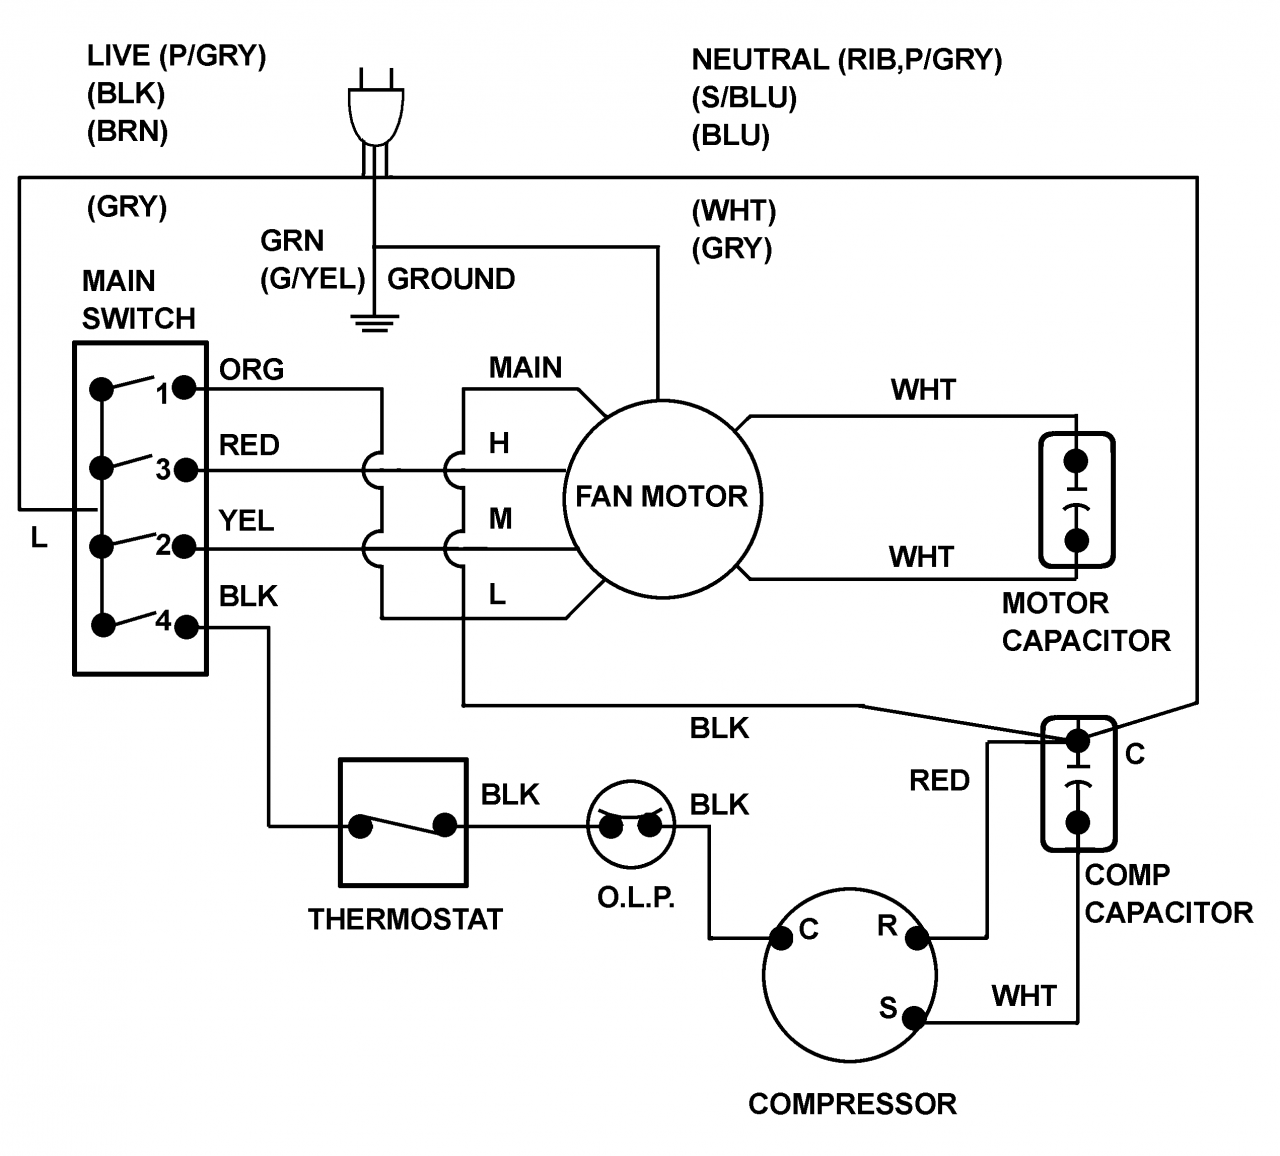 Compressor Start Capacitor Wiring Diagram Diagrams Schematics For Starting Ac Wiring Thermostat Wiring Circuit Diagram